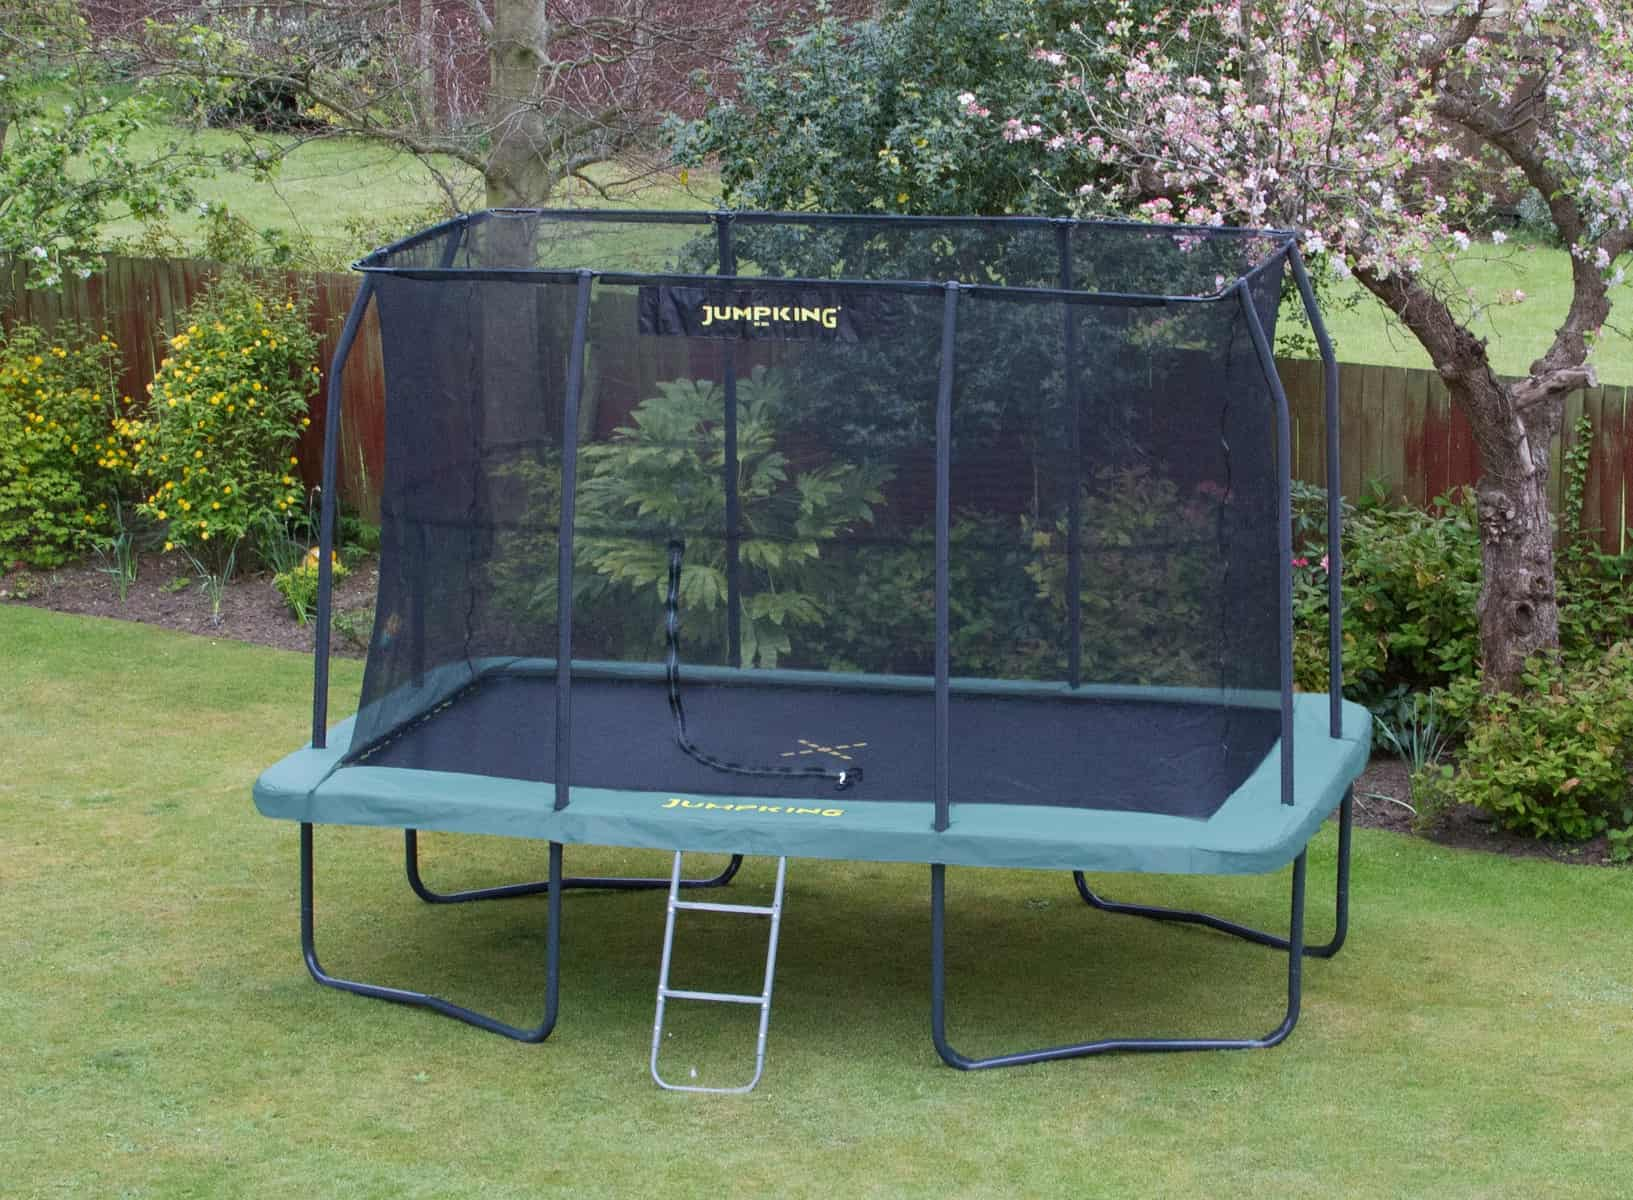 8ft x 12ft Jumpking Rectangular Trampoline